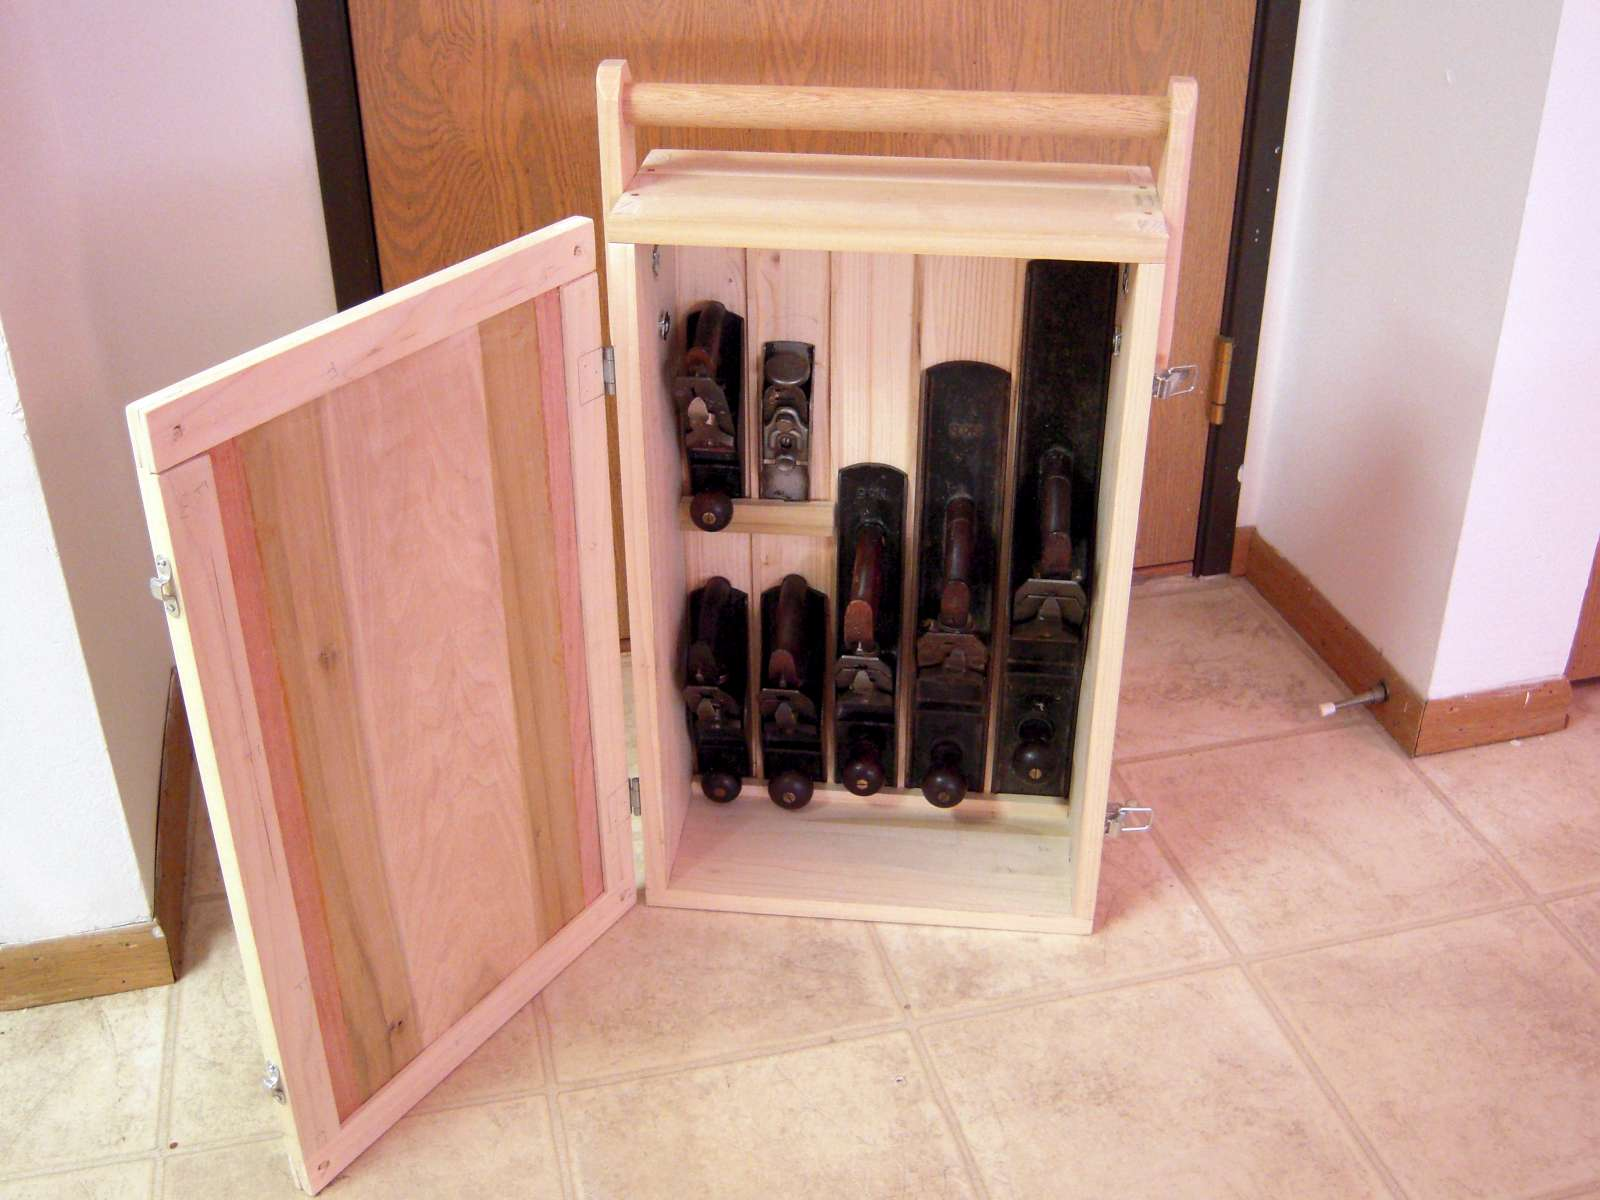 Chriss Tool Storage The English Woodworker